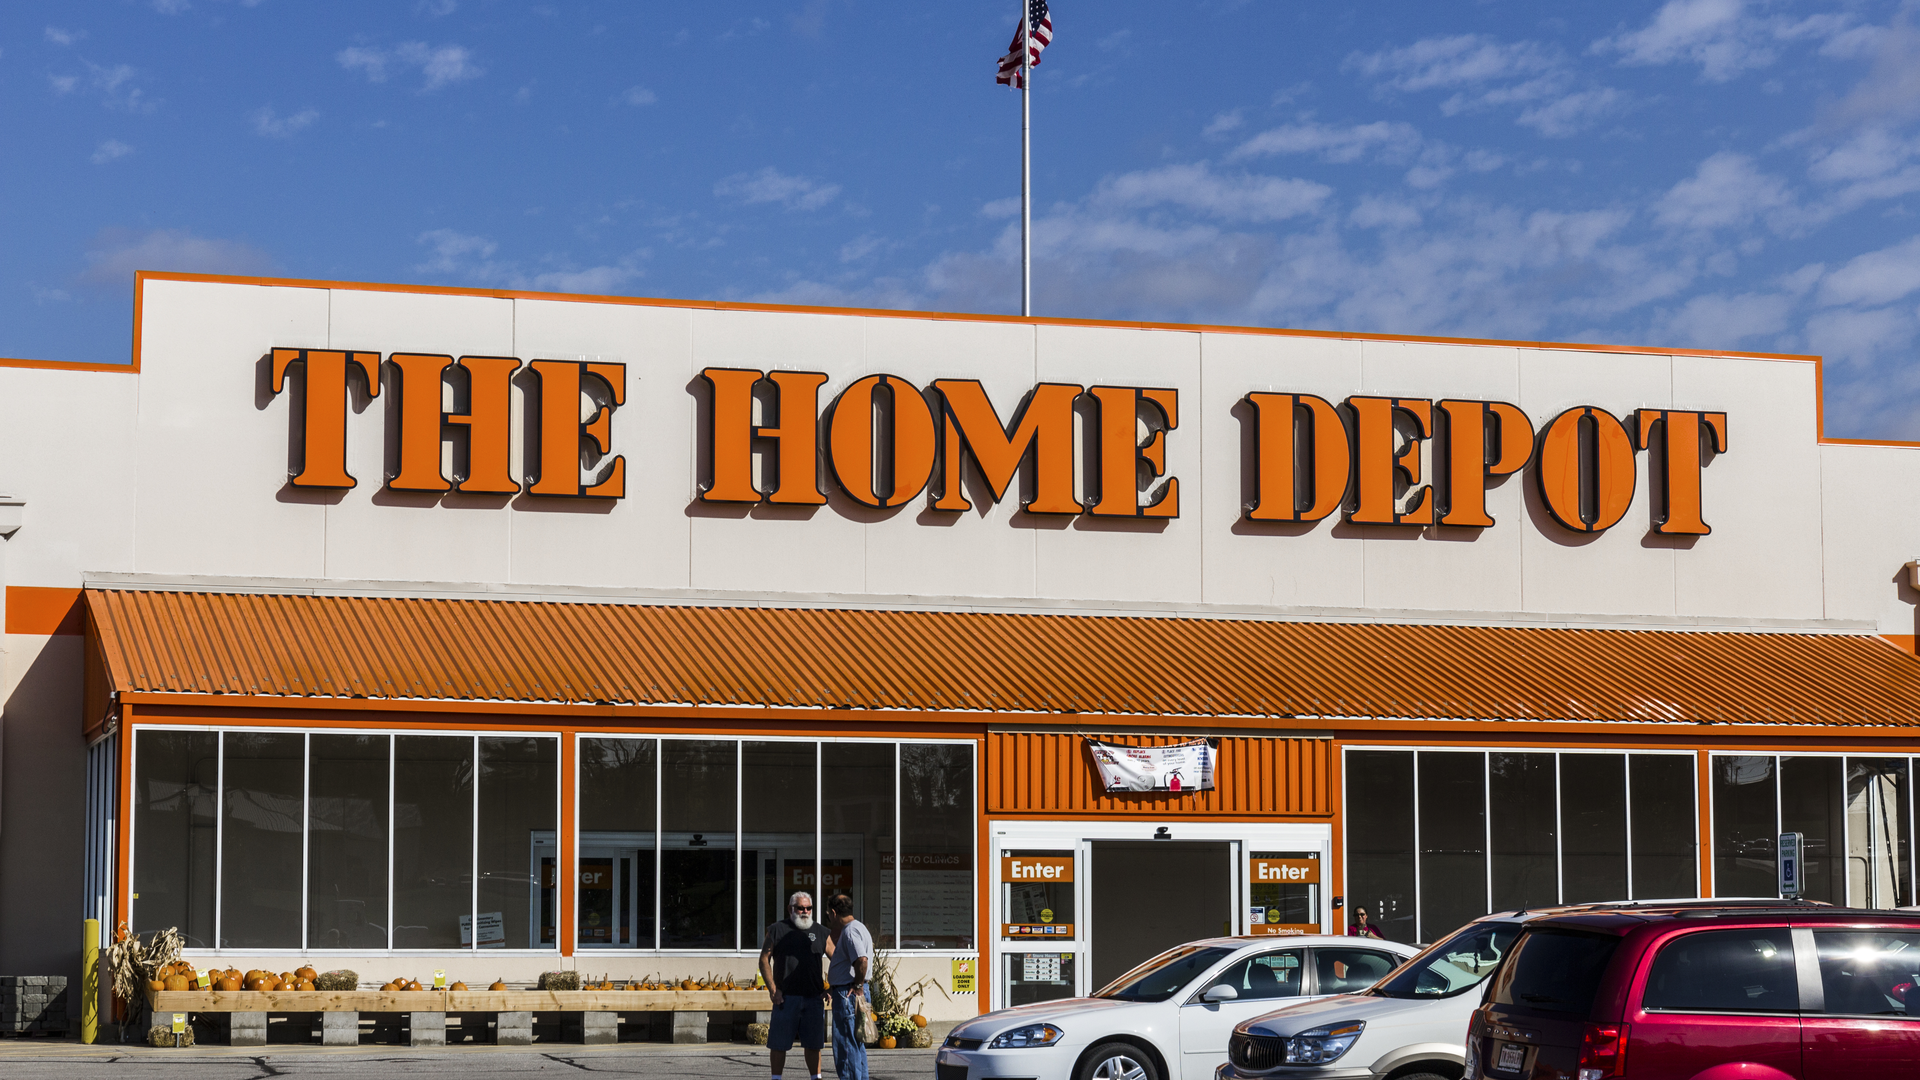 Global Financial Engineering Weekly Trades Analysis for The Home Depot, Inc. (HD)